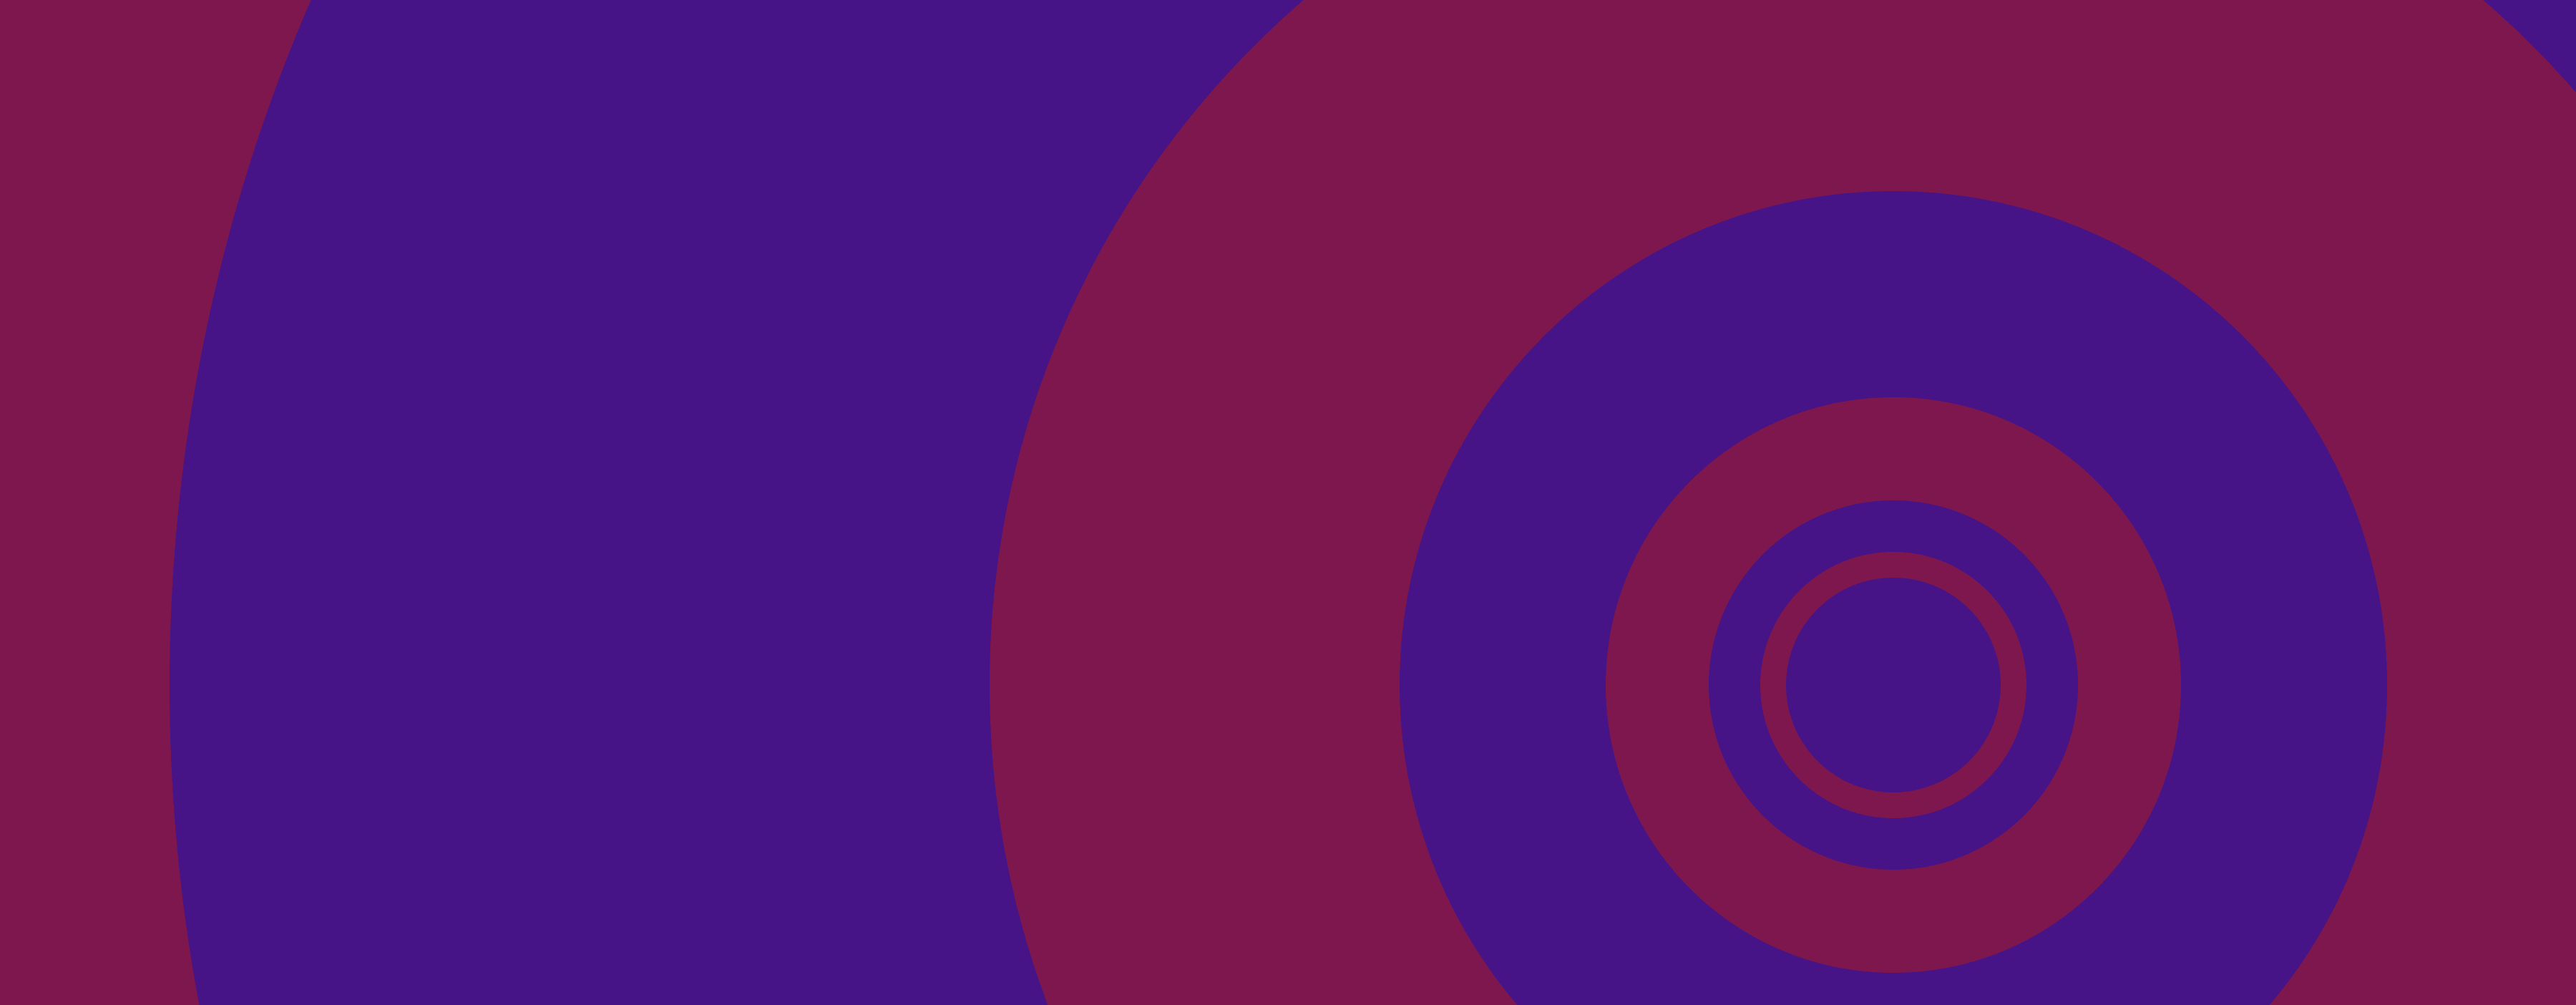 A diagram of concentric circles